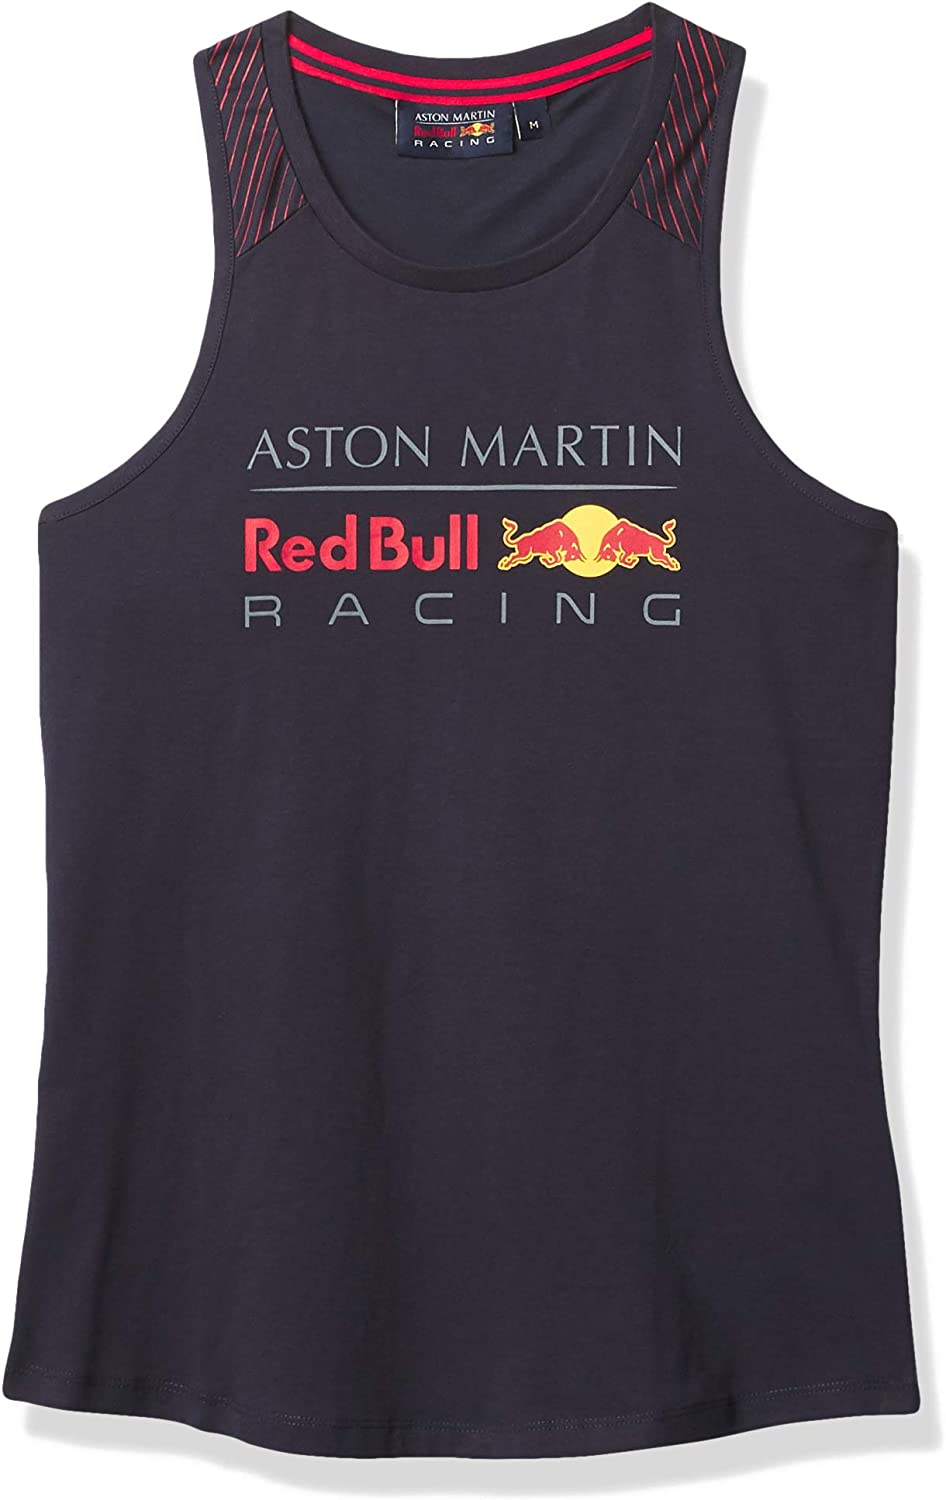 Formula 2021 spring and summer new 1 Women's Tank Top Aston Red S Martin Very popular! Bull Navy Racing